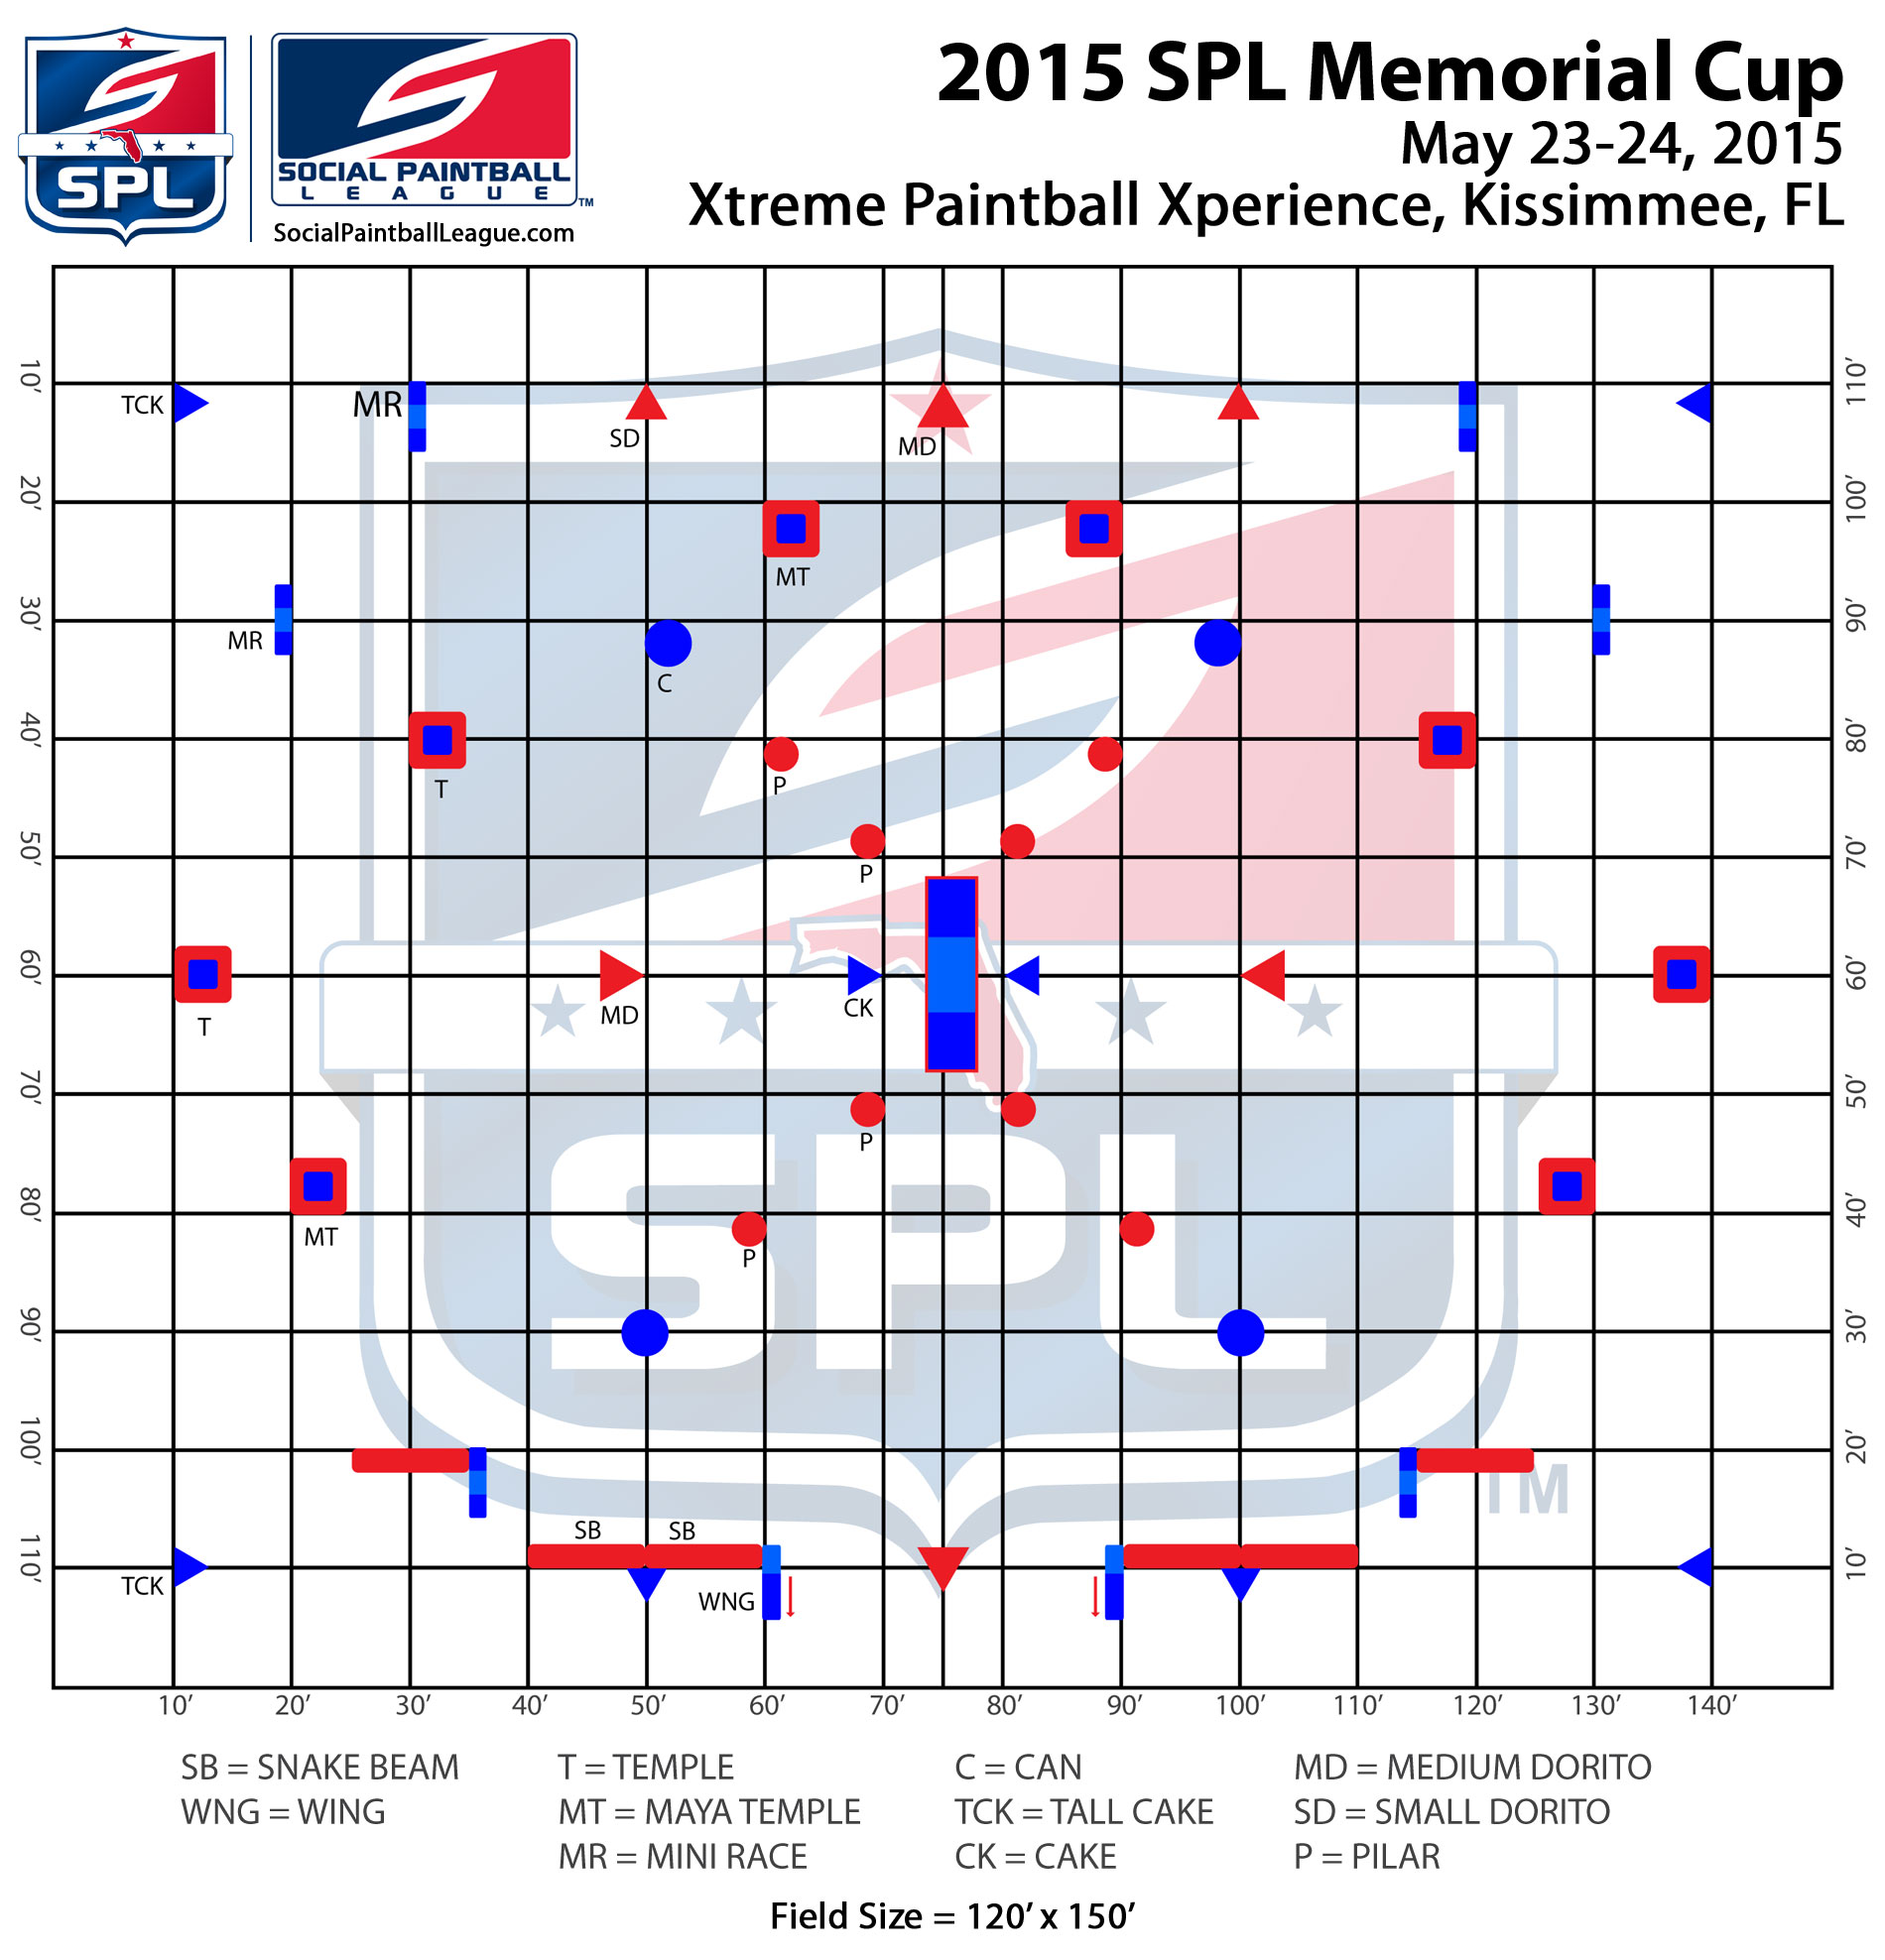 2014 SPL MC layout